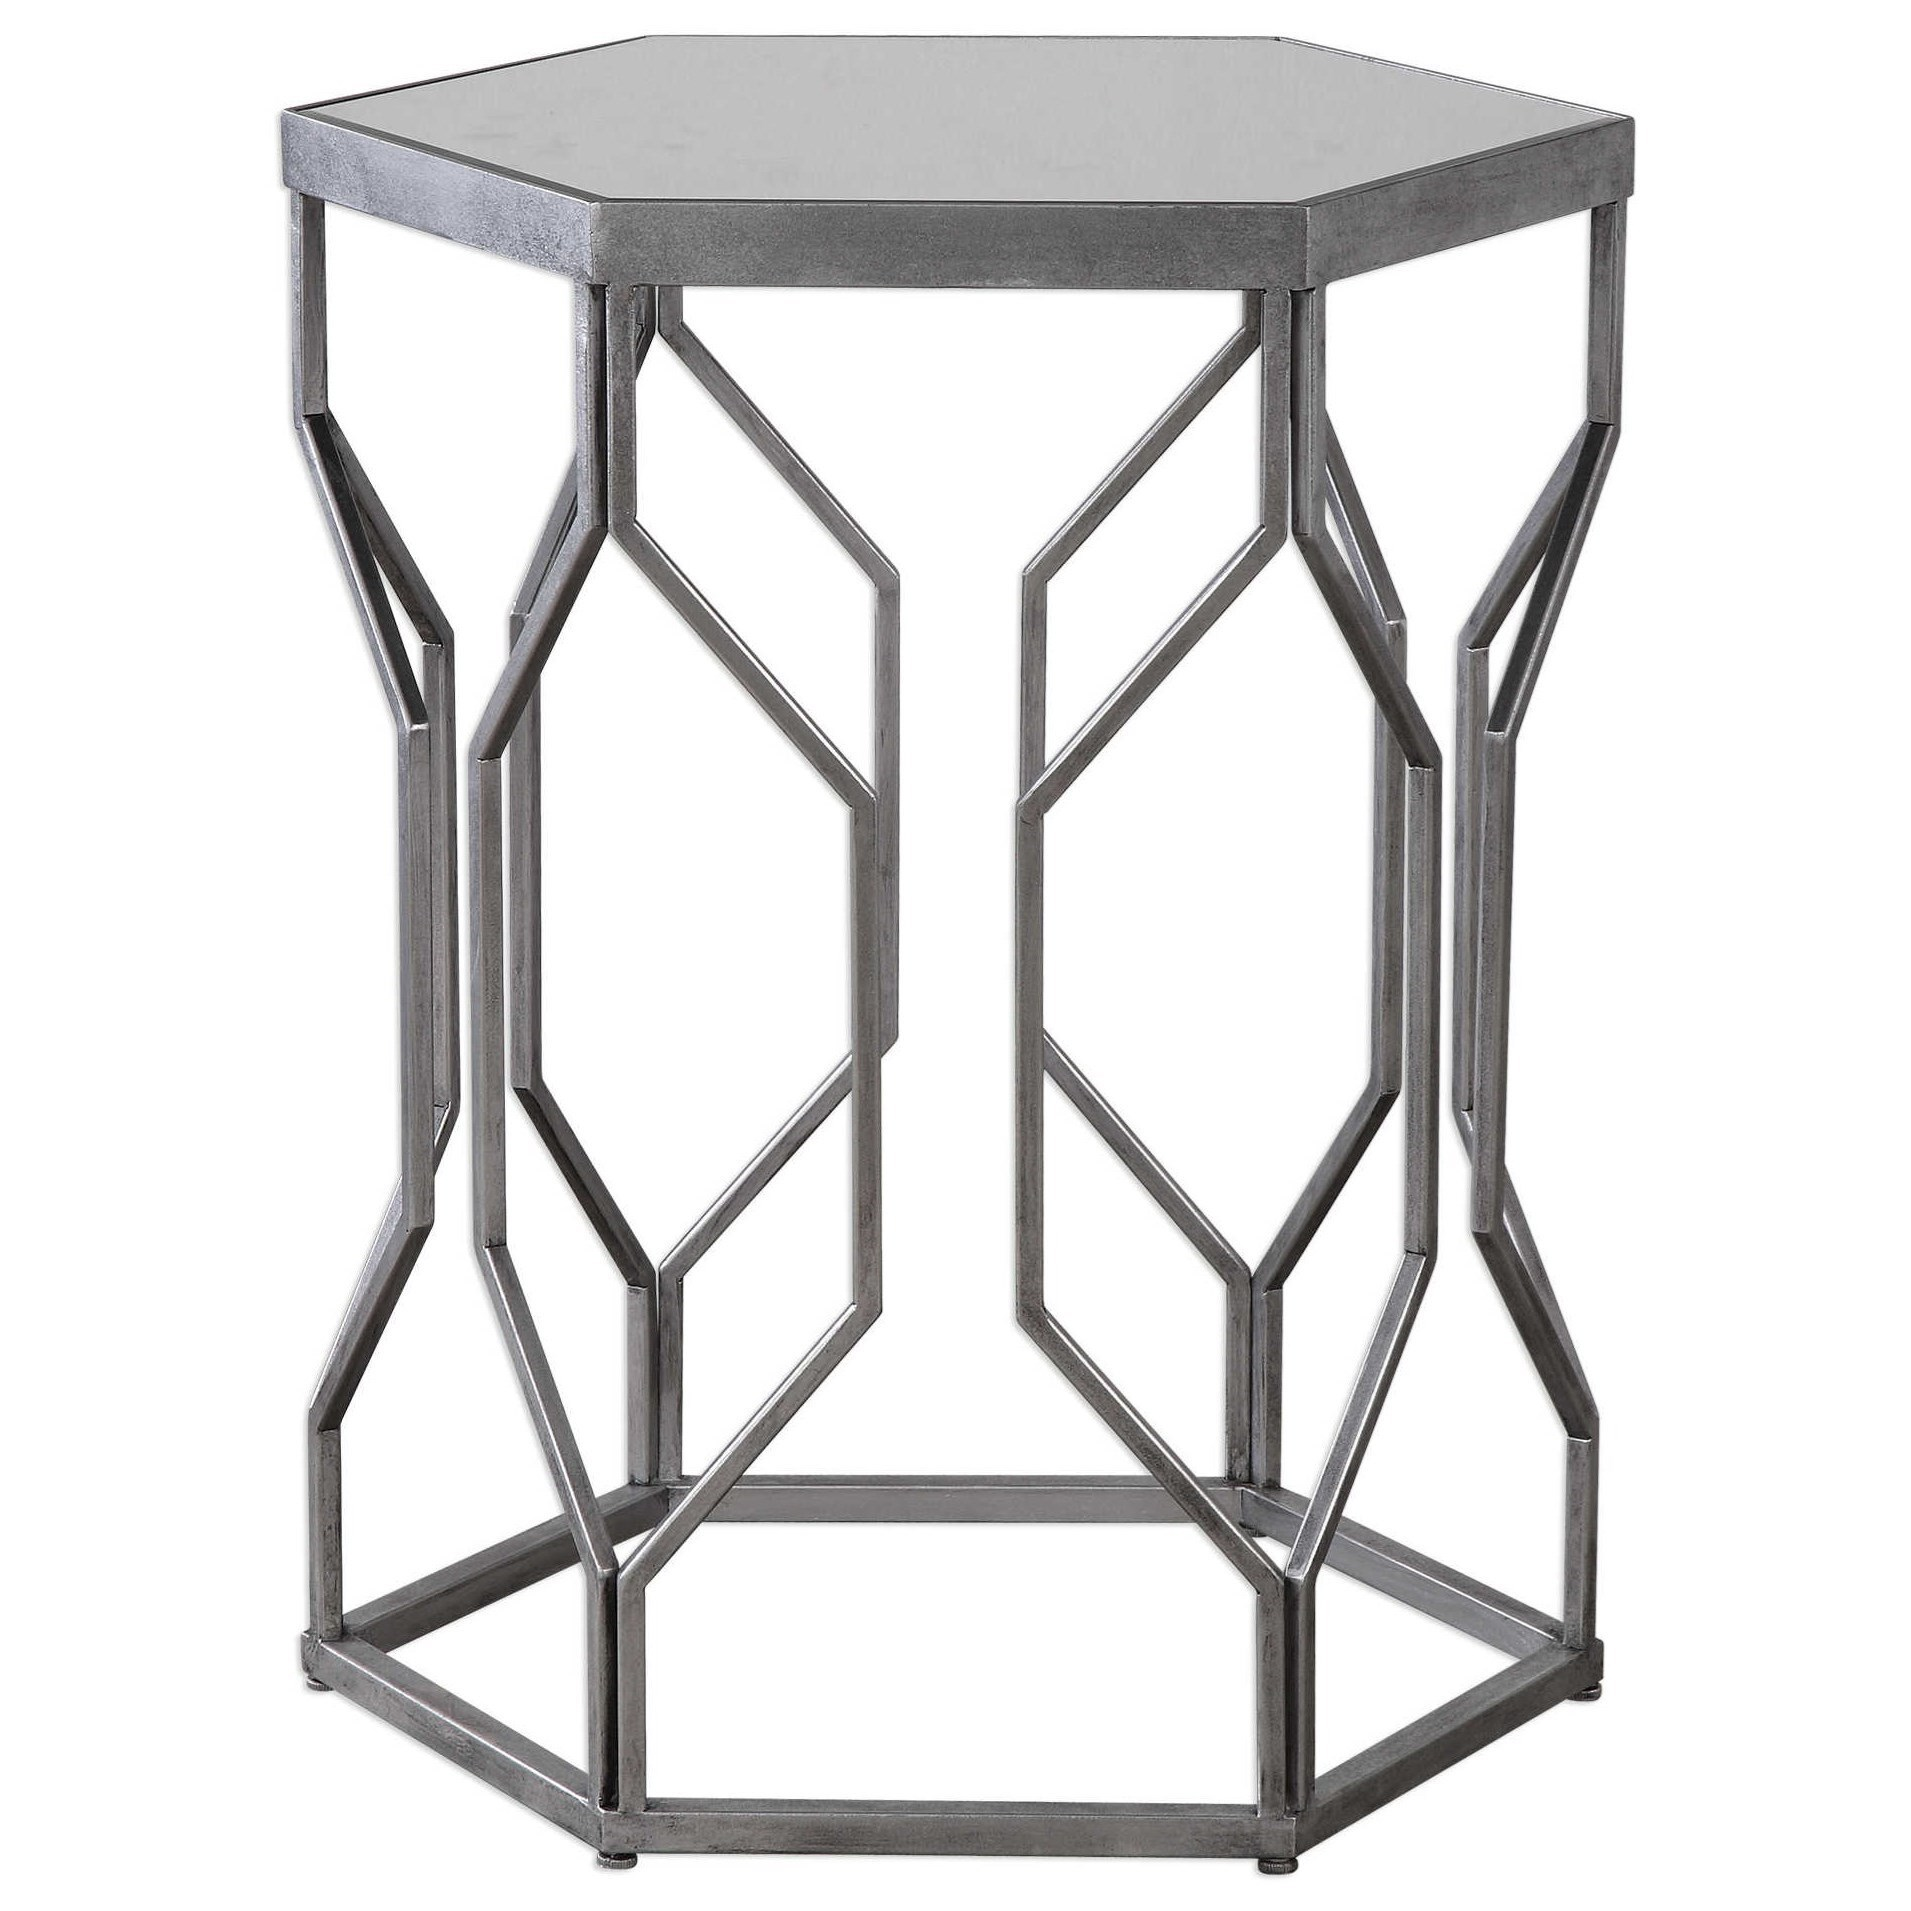 Medium image of uttermost accent furniture stellan iron accent table